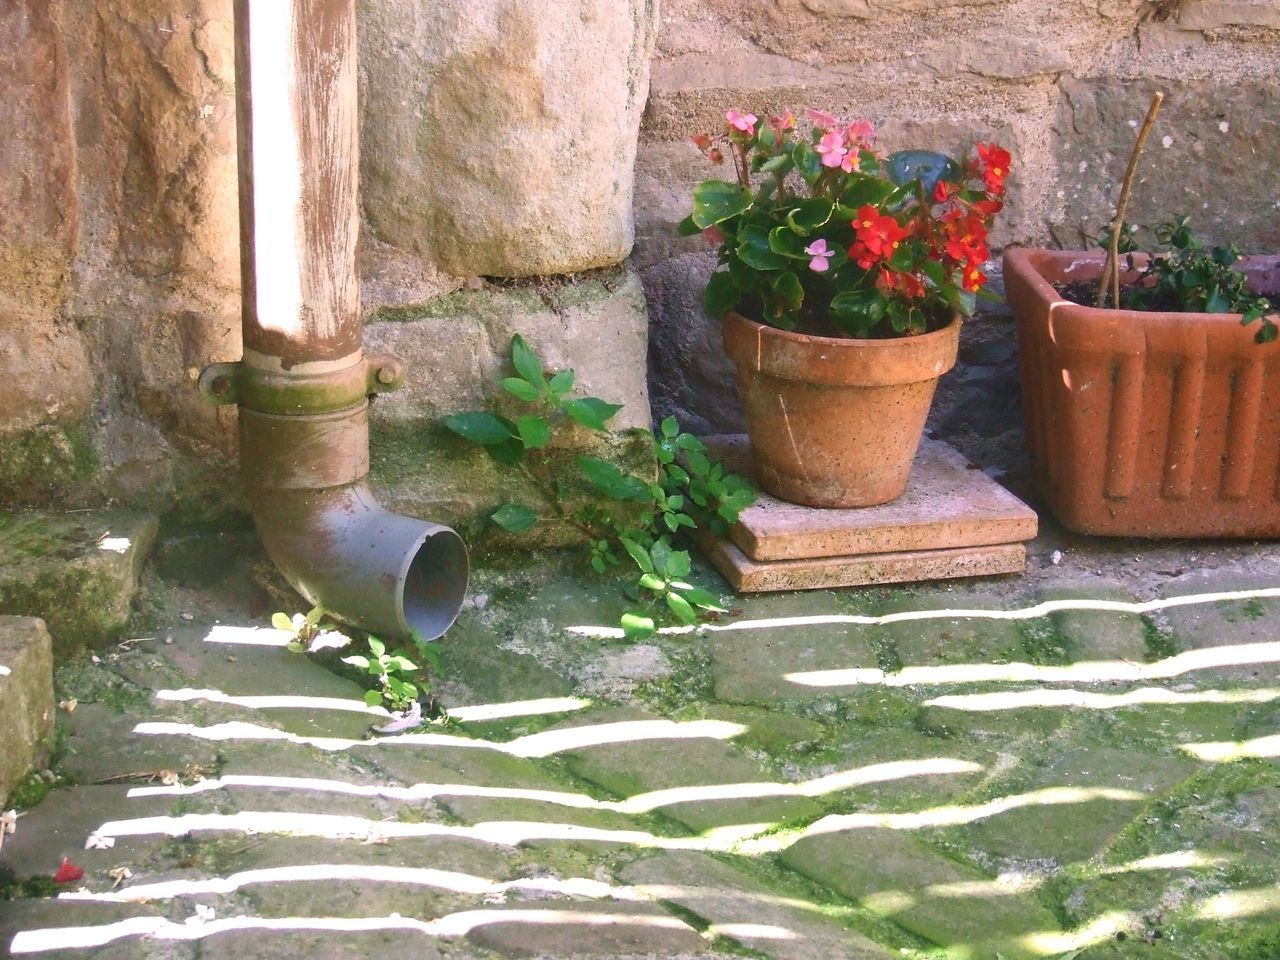 Close-up Cobbled Street Cobbled Street And Stone Wall Flower Flower Pots Gutter Leaf Plant Potted Plant Scum Scum Cobbled Street Spout Stone Wall Stone Wall And Flowers